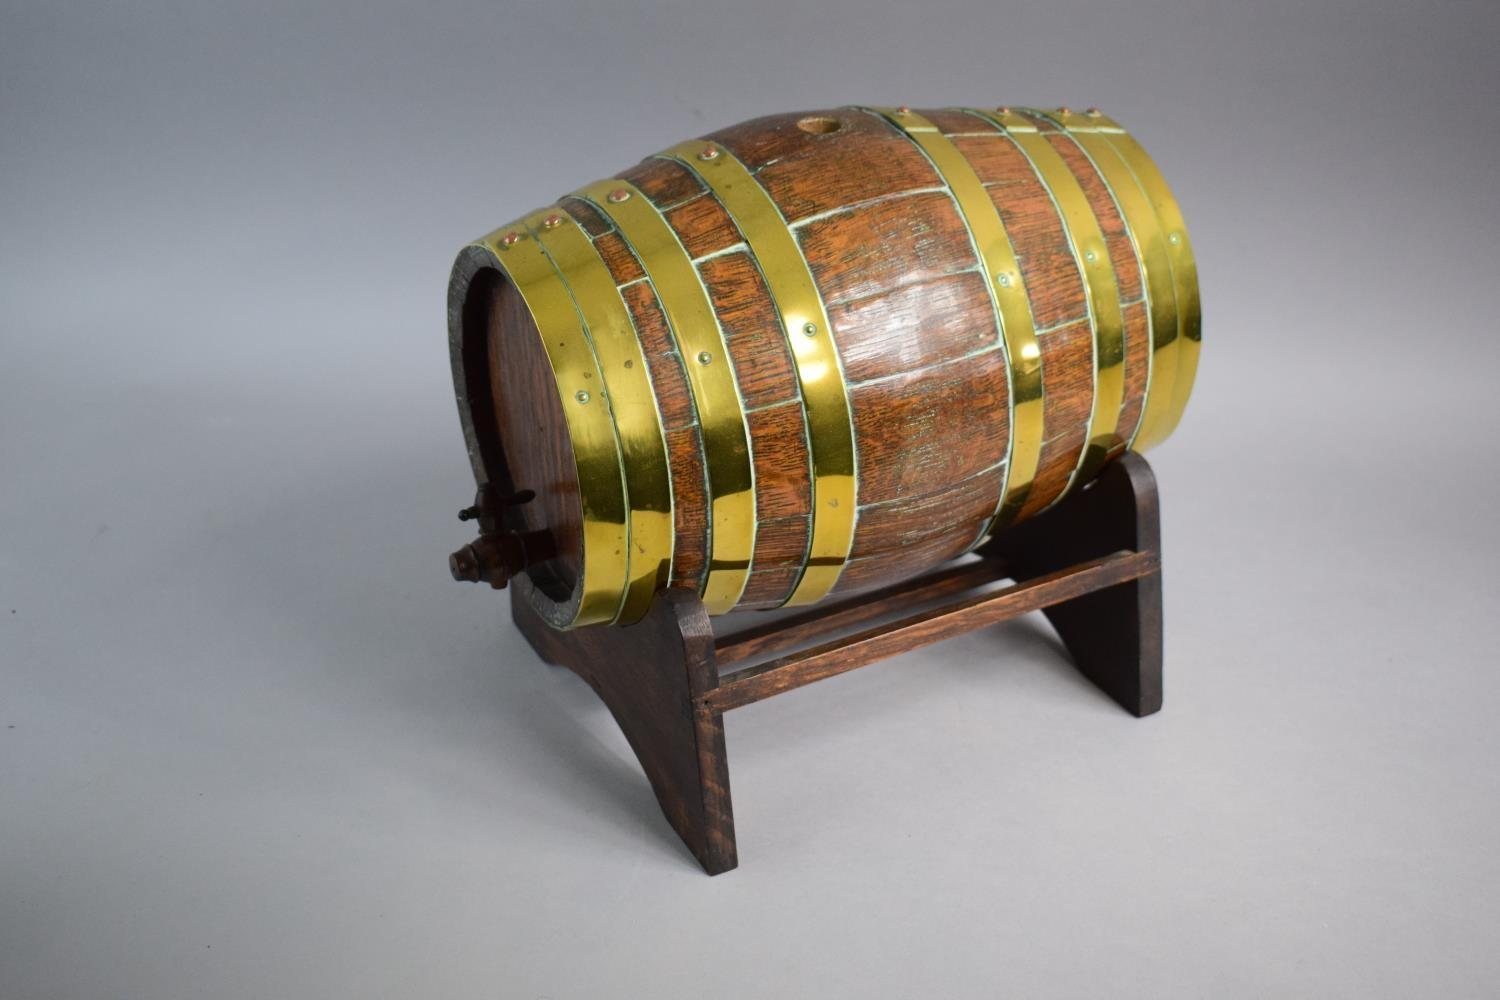 Lot 2 - A Late 19th Century Brass Banded Oak Spirit Barrel on Stand. 28.5cms Long. Complete with Tap